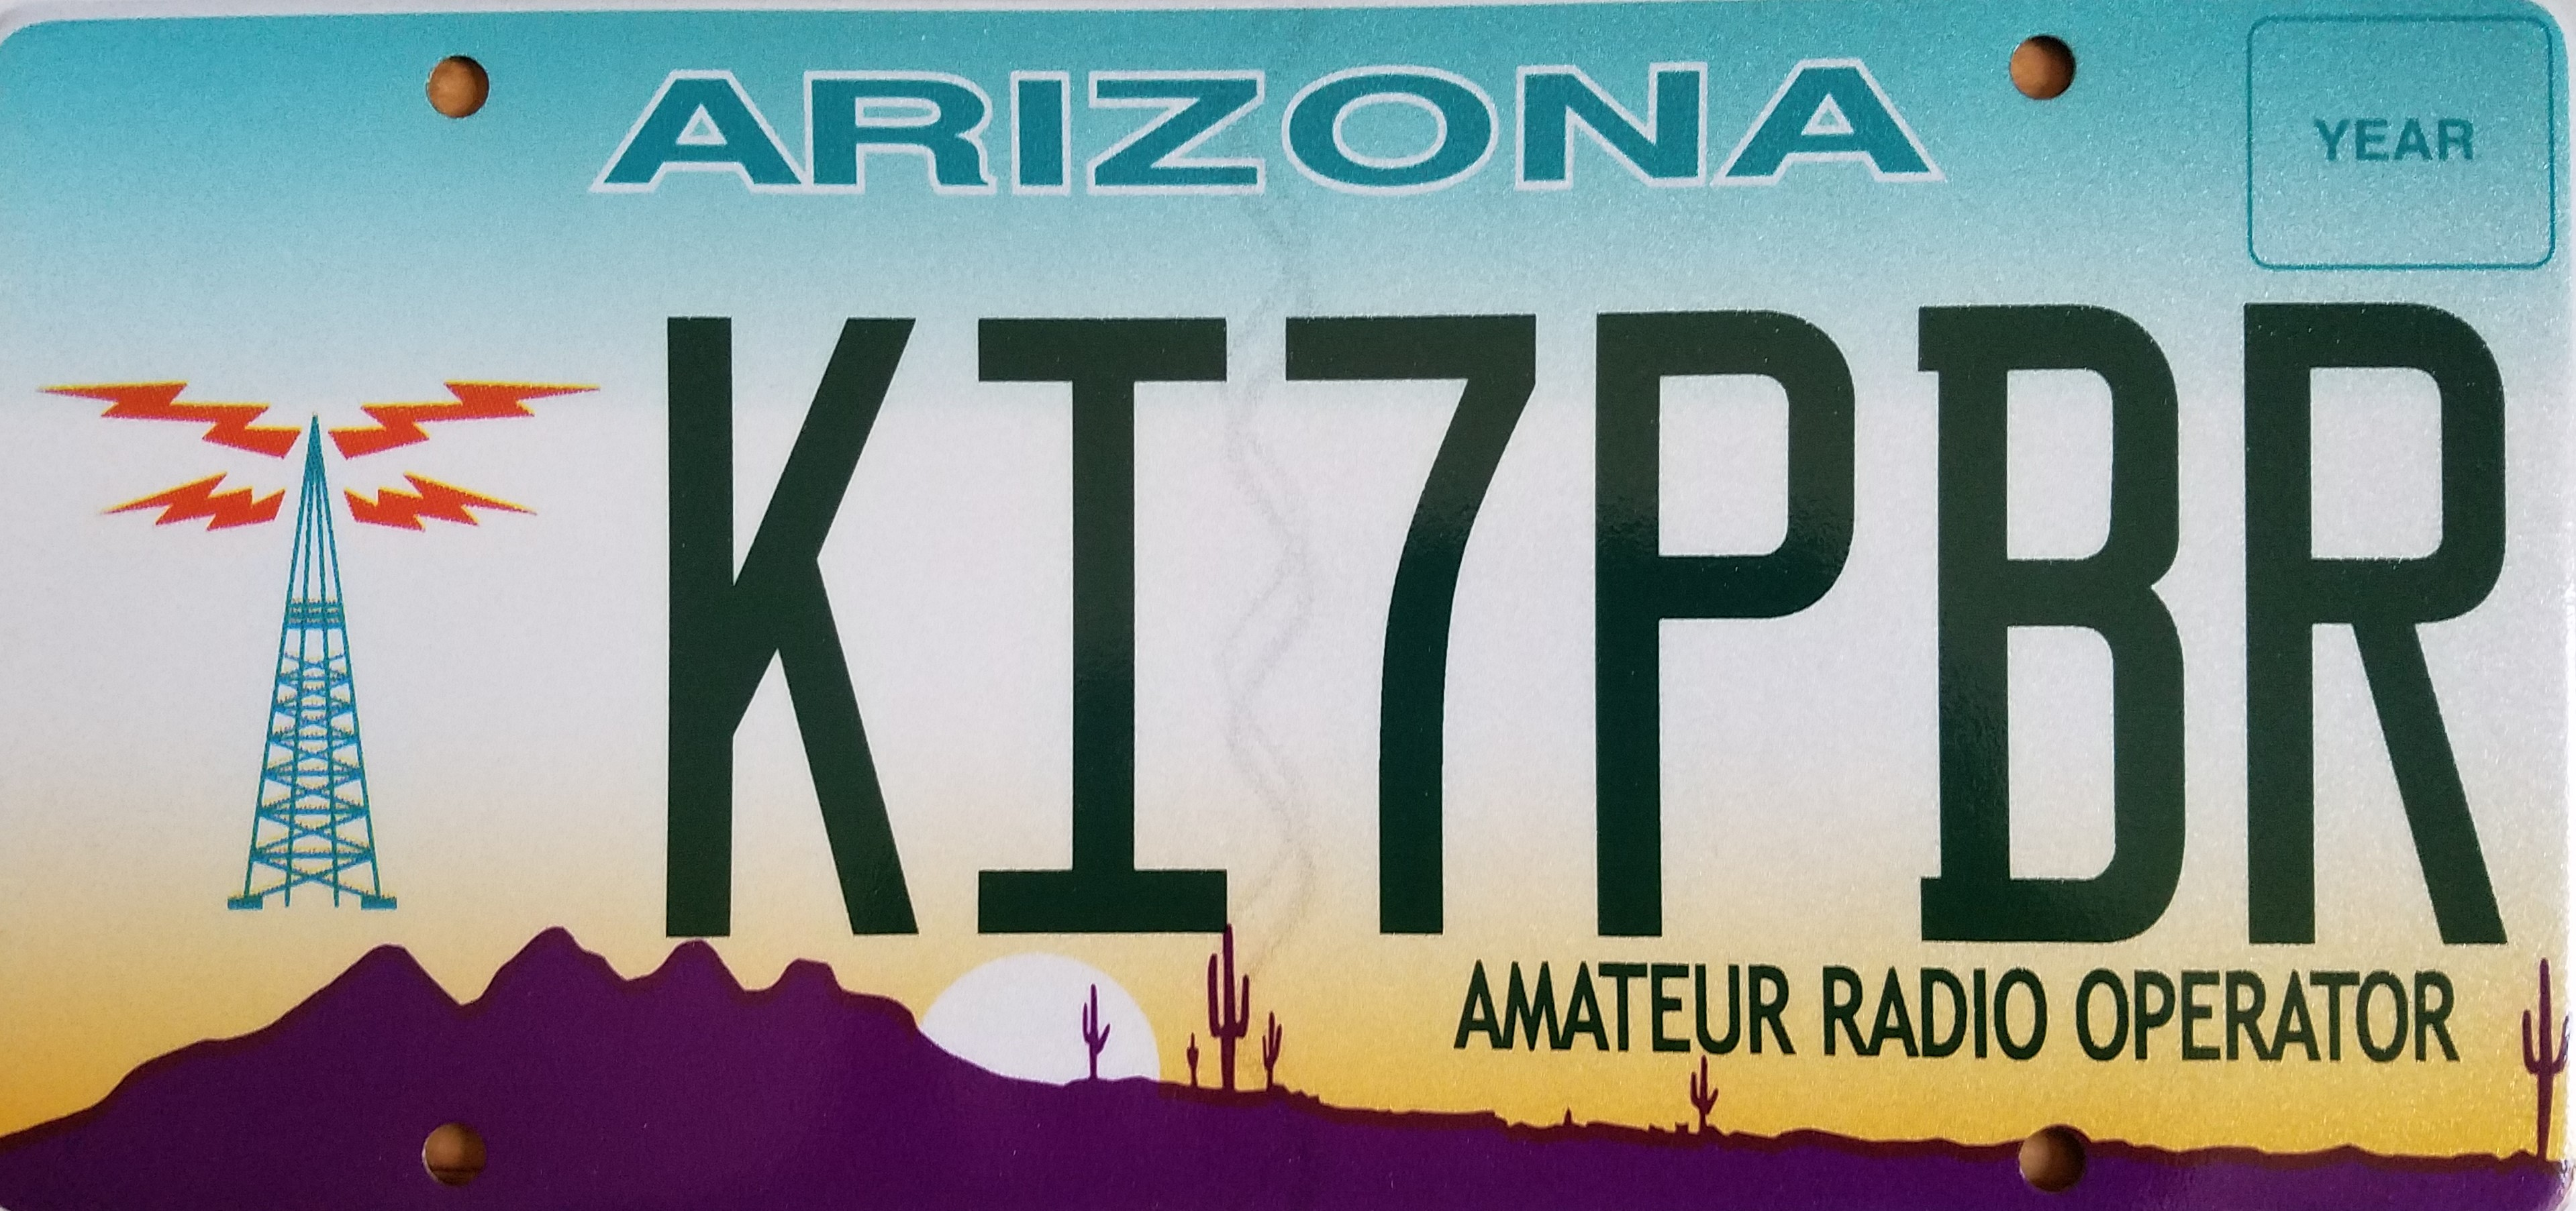 Arizona Amateur Radio Operator Plate